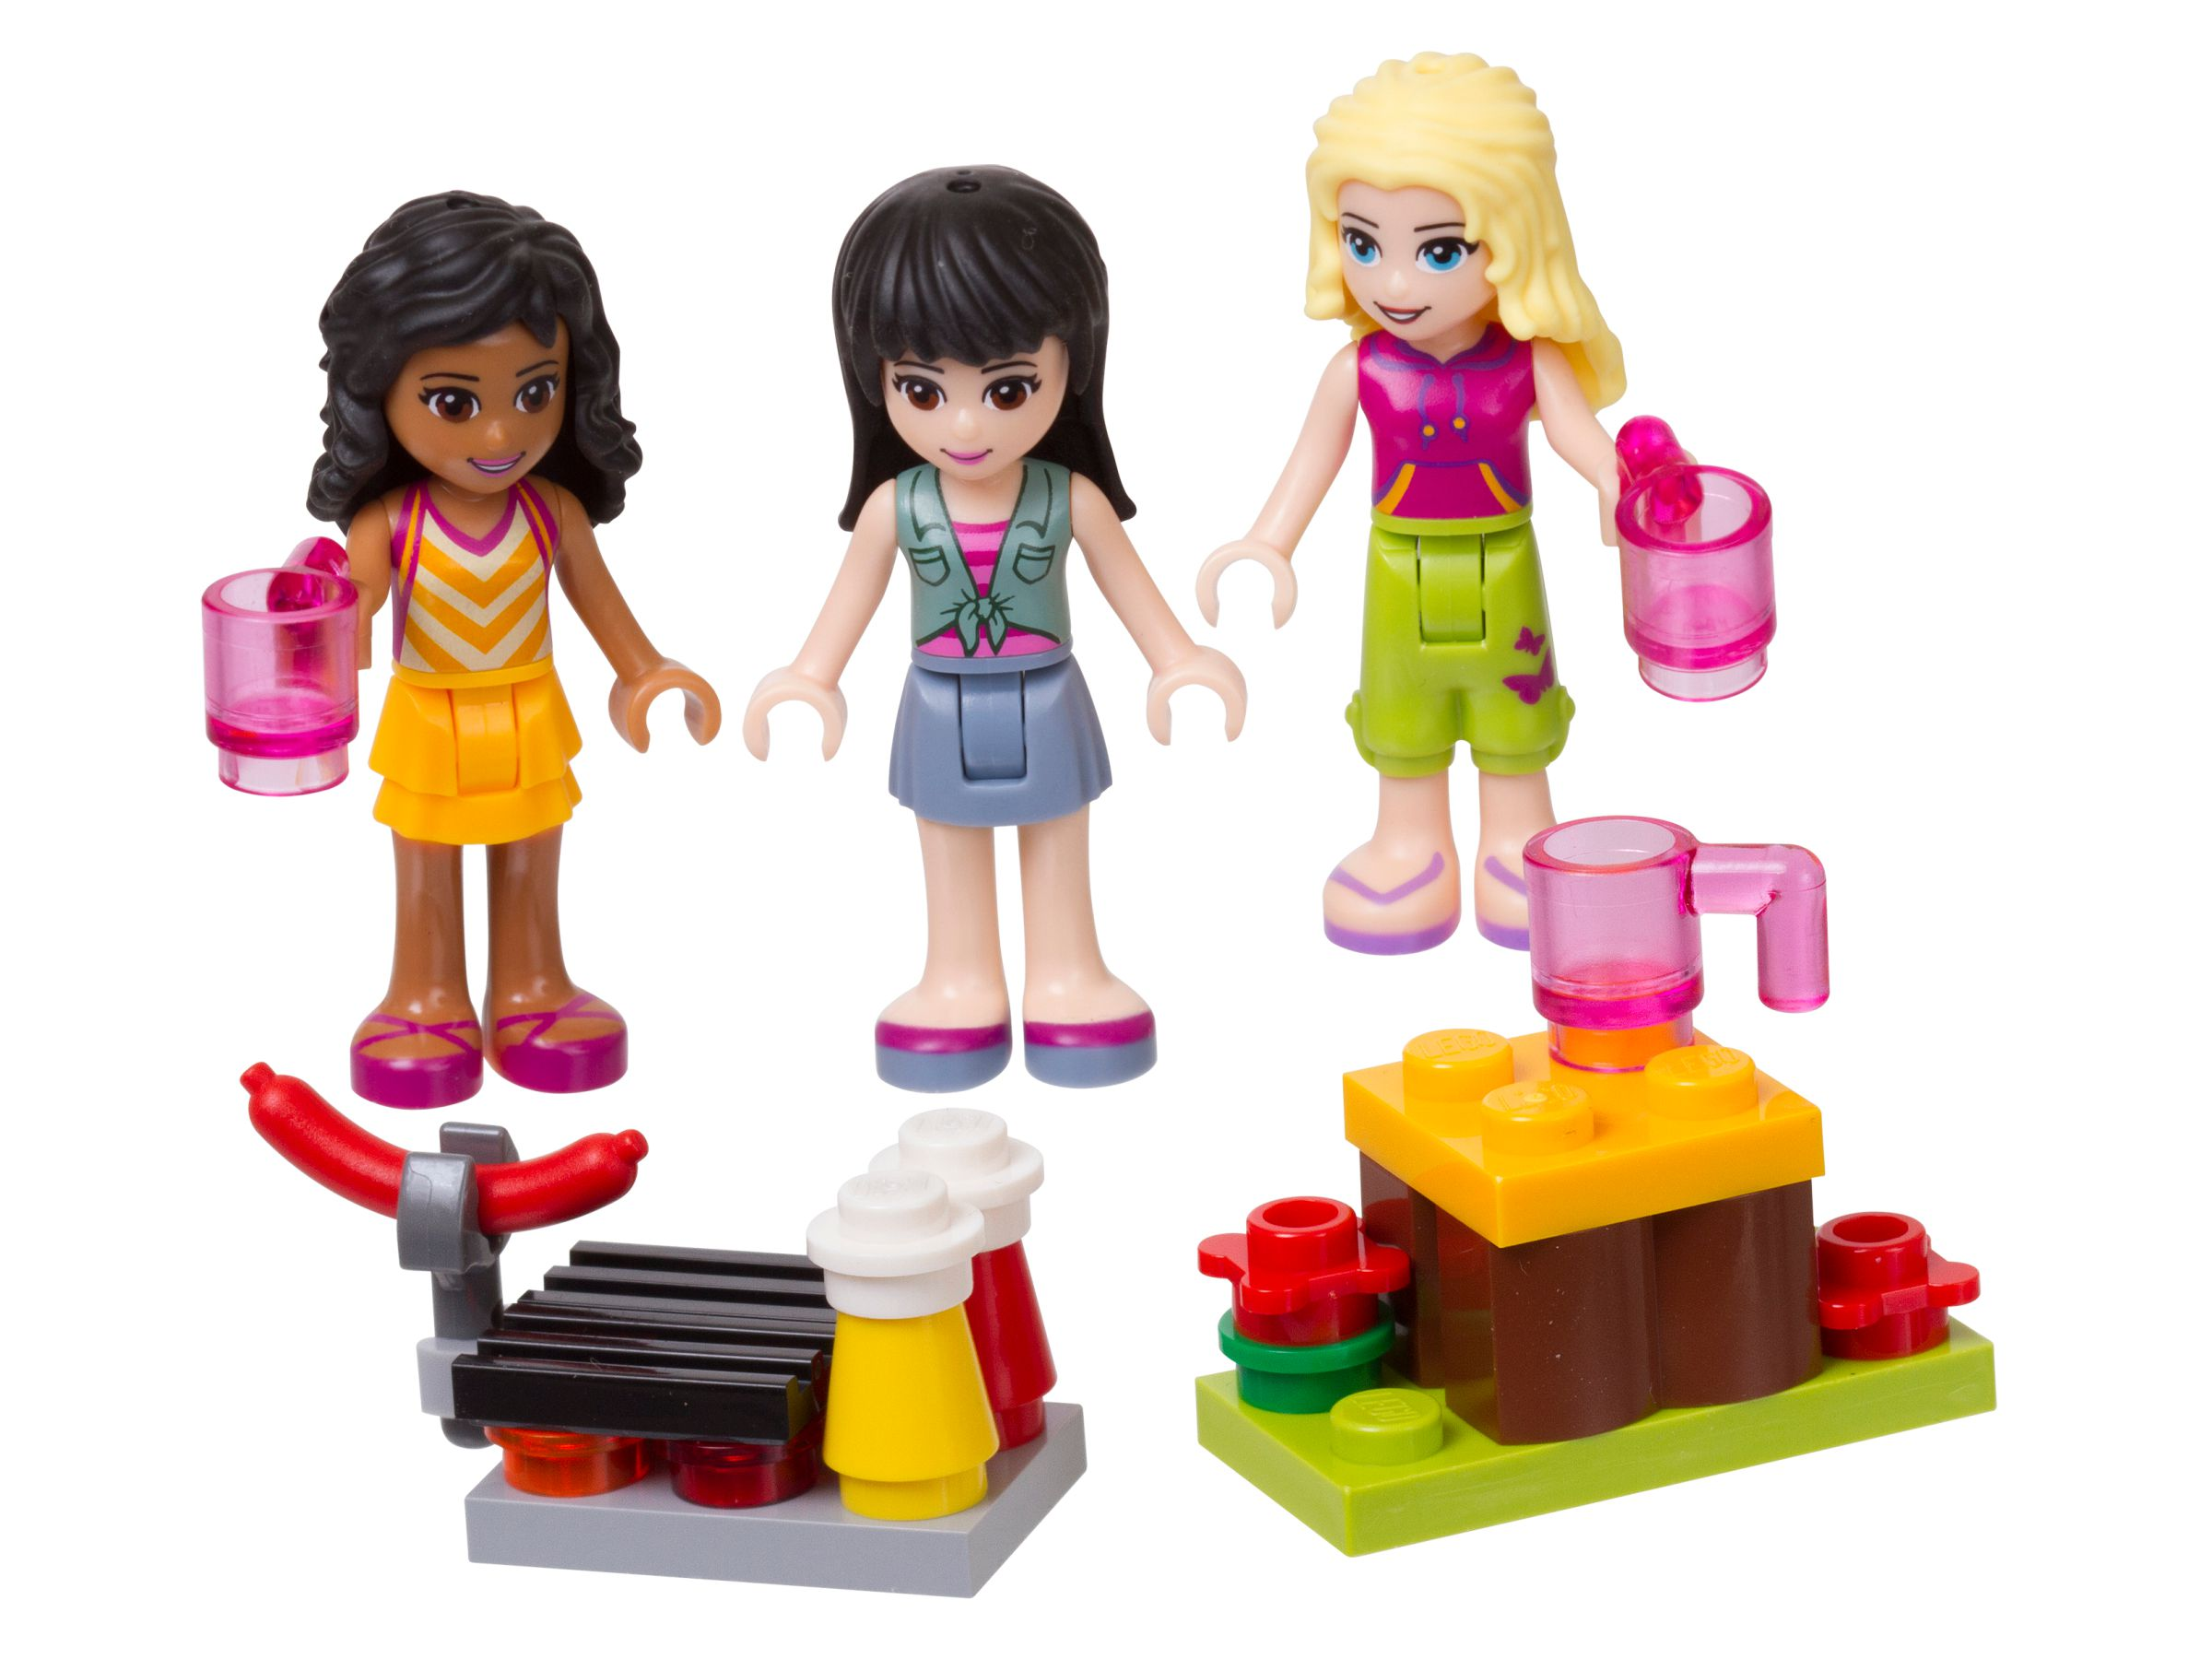 LEGO Friends 853556 Spielfiguren-Zeltlager-Set